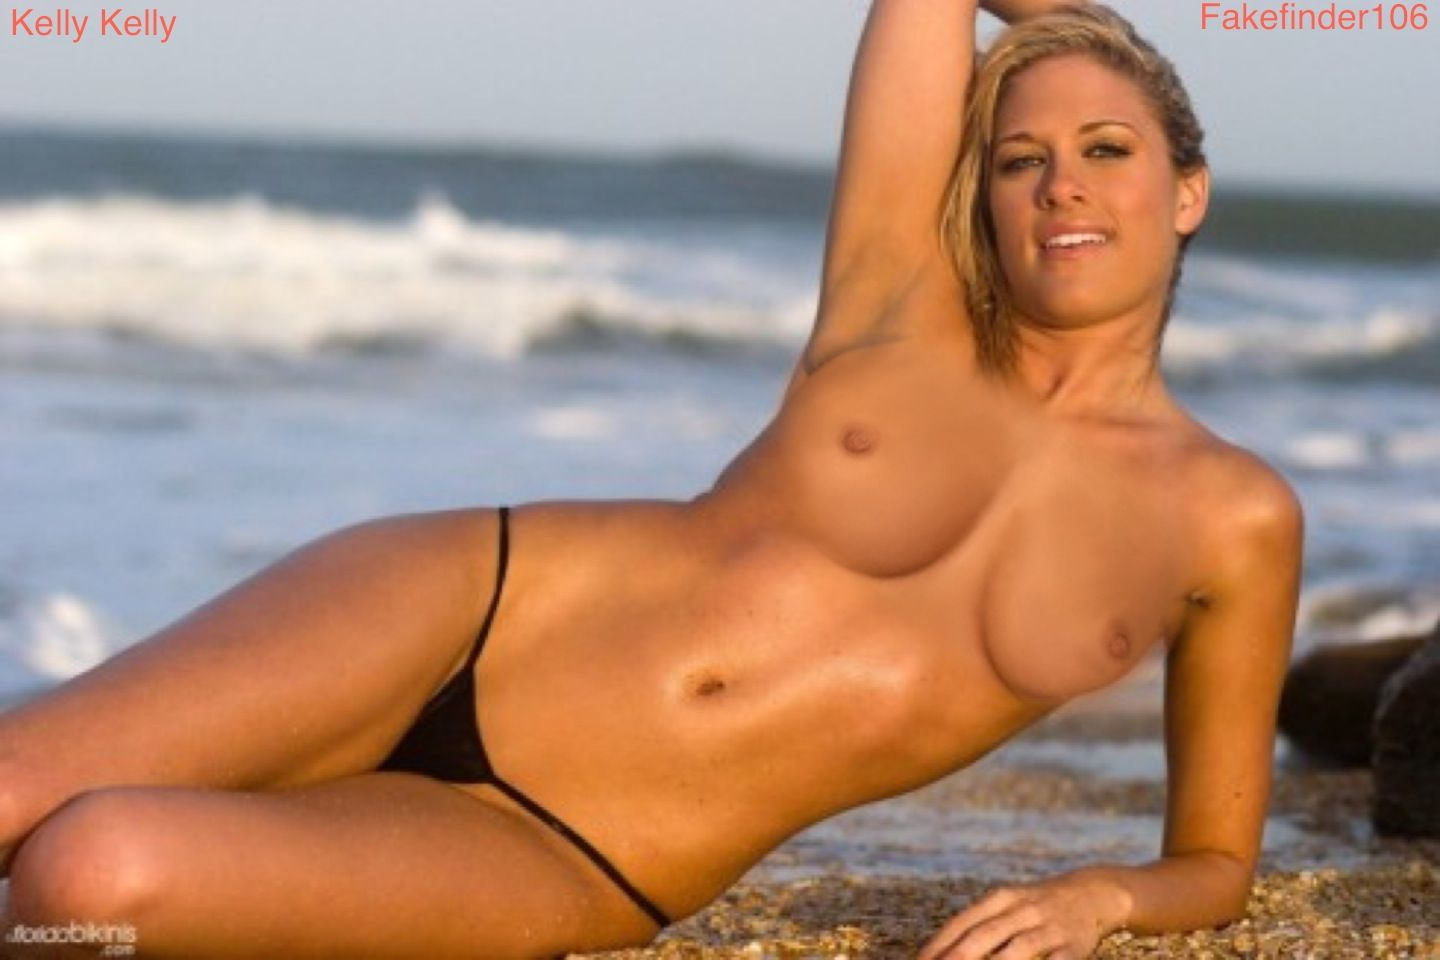 diva kelly uncensored kelly Wwe nude